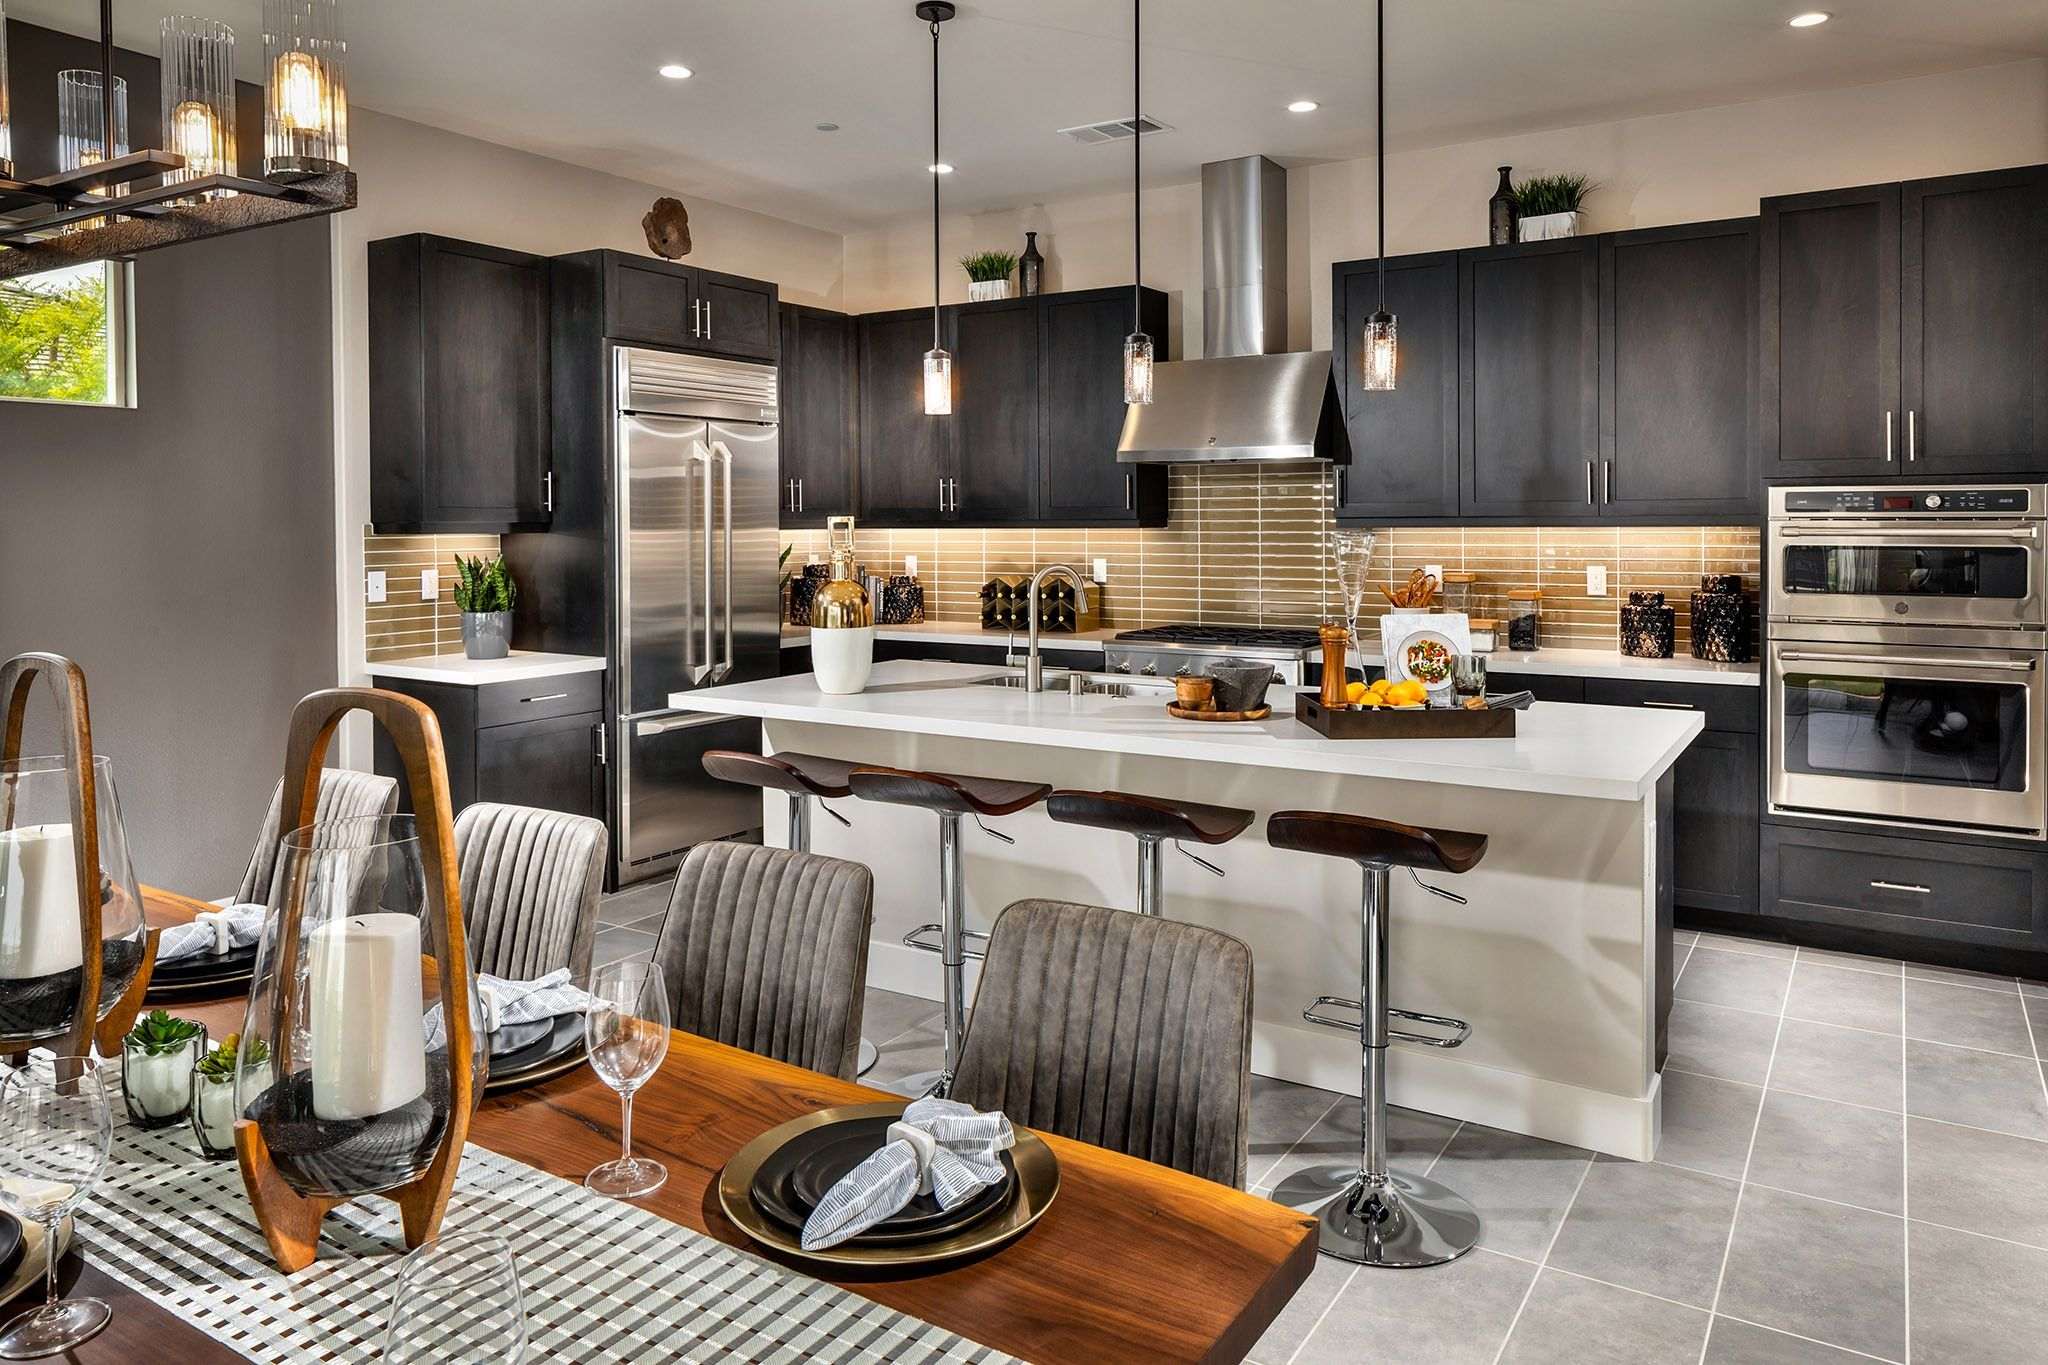 Kitchen featured in the Liberty By Shea Homes - Trilogy in Las Vegas, NV